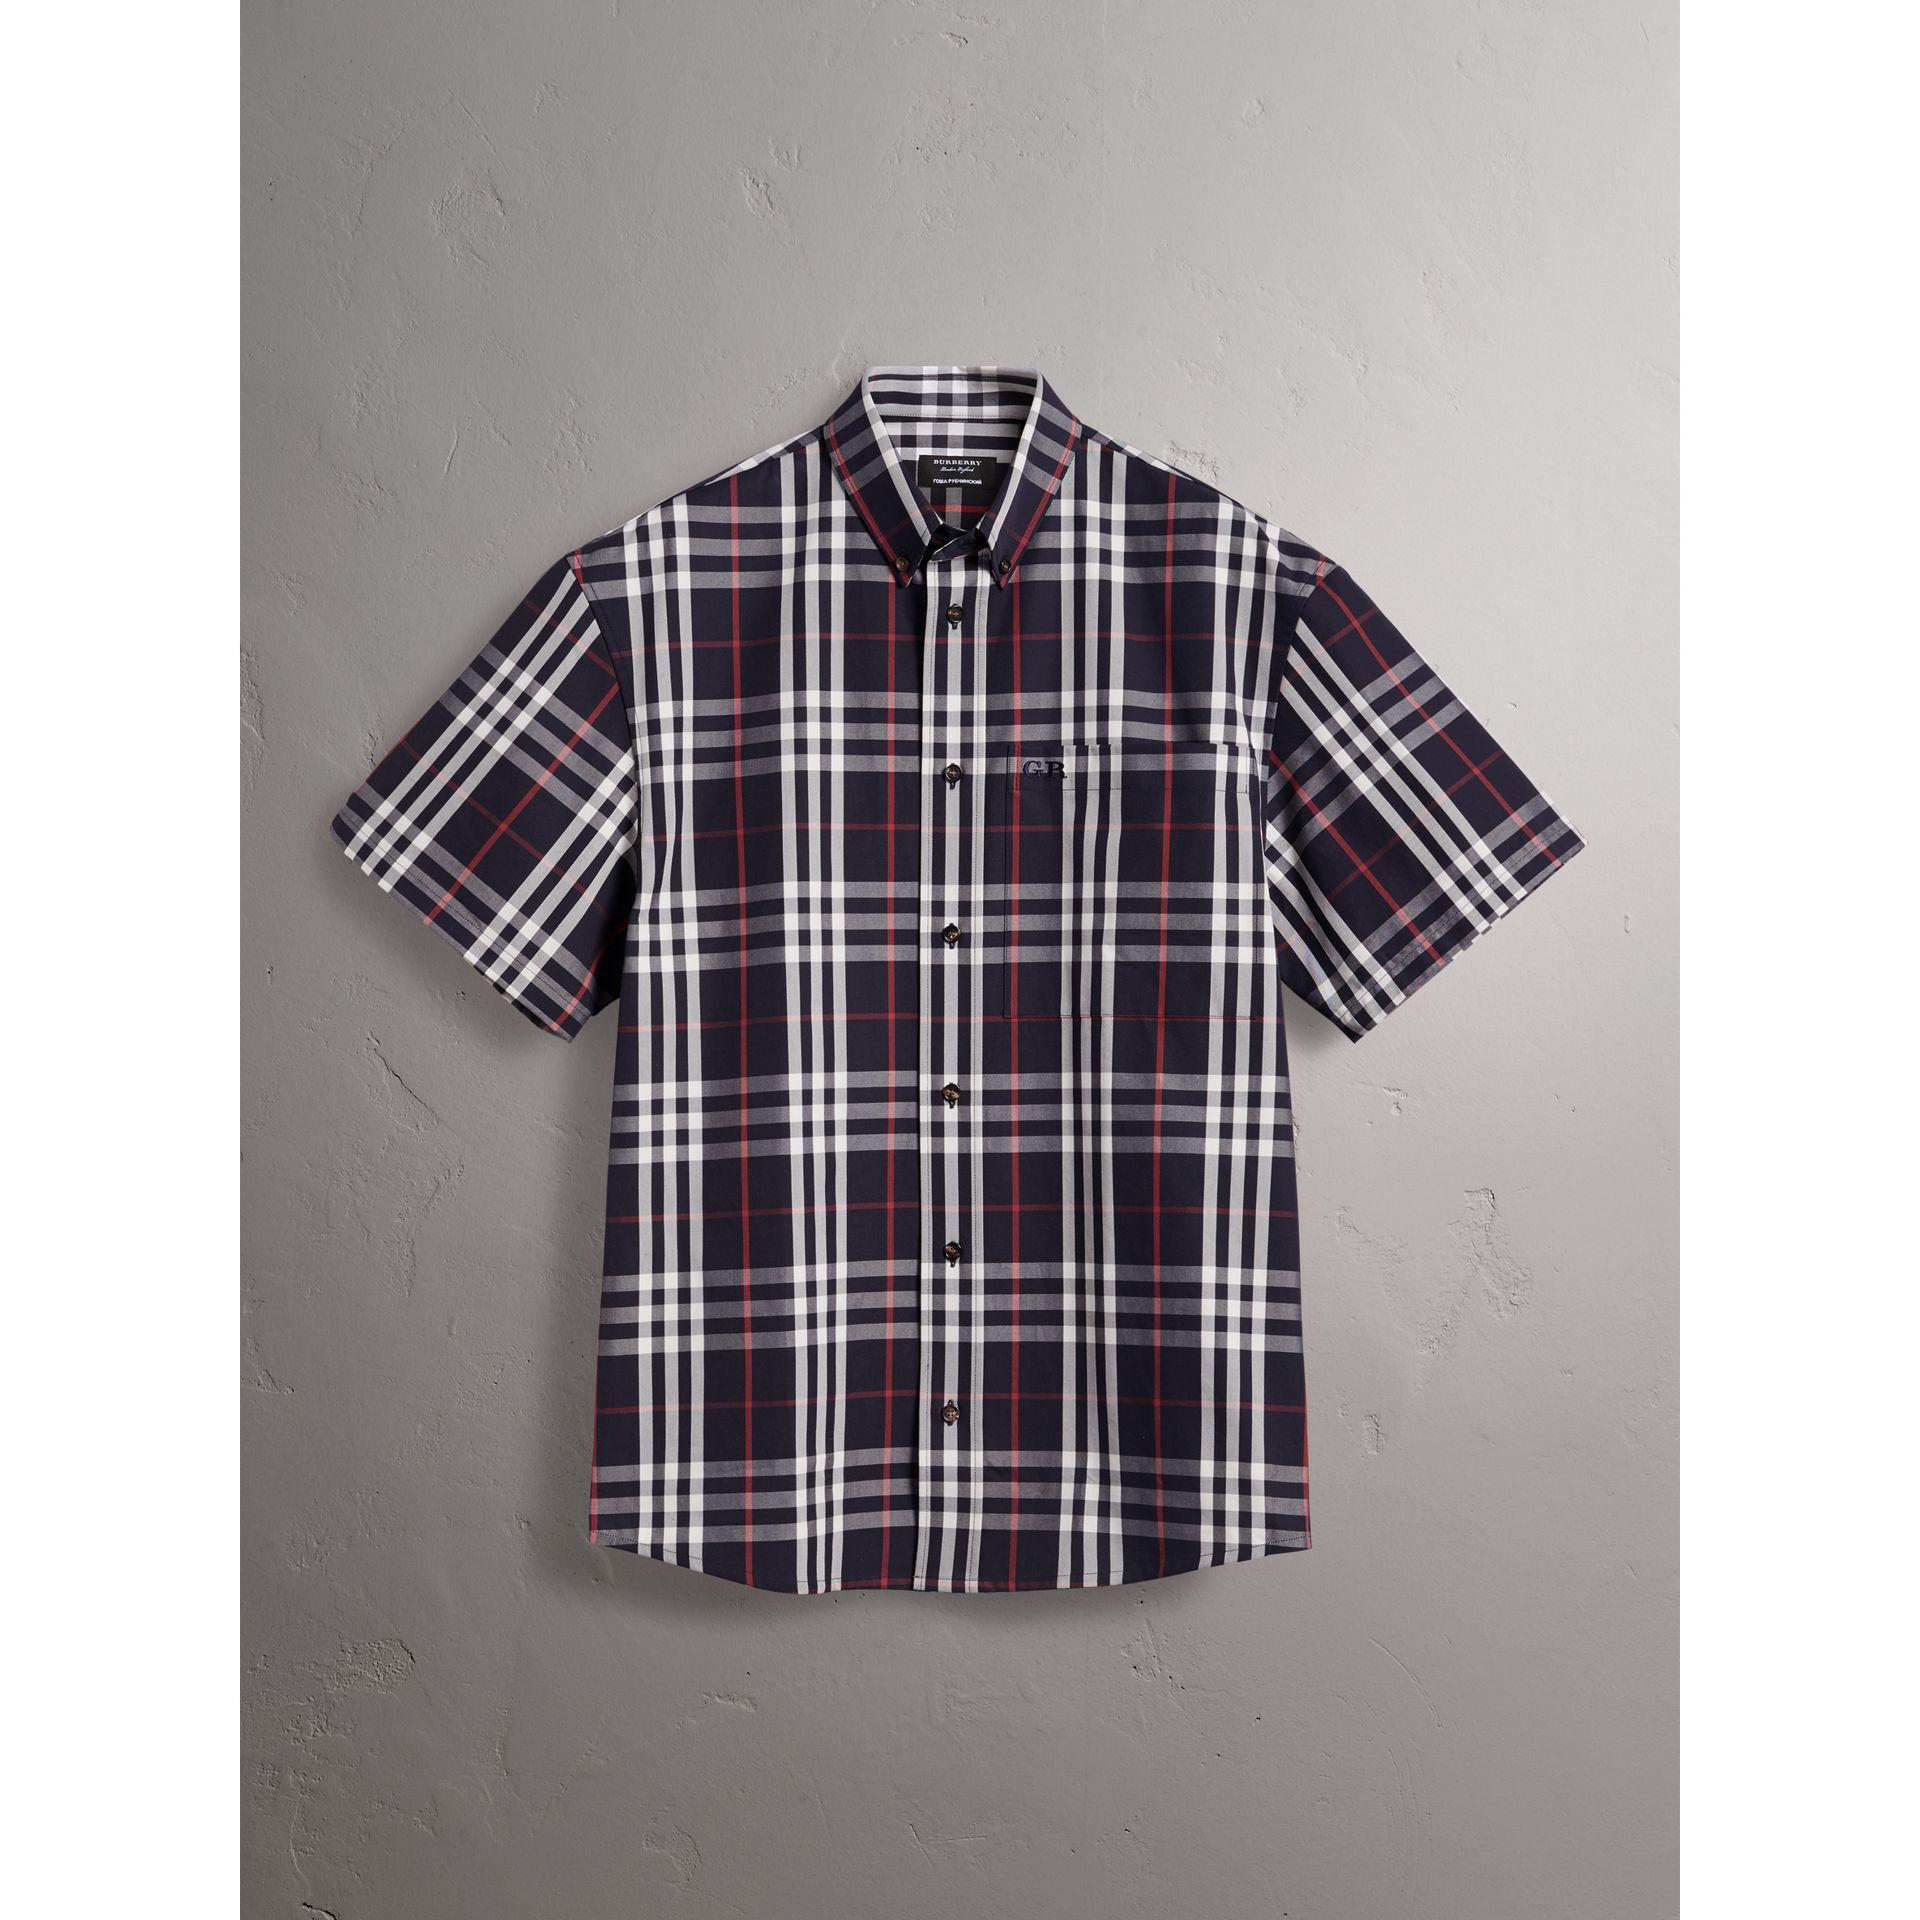 Gosha x Burberry Short-sleeve Check Shirt in Navy - Men | Burberry United Kingdom - gallery image 4